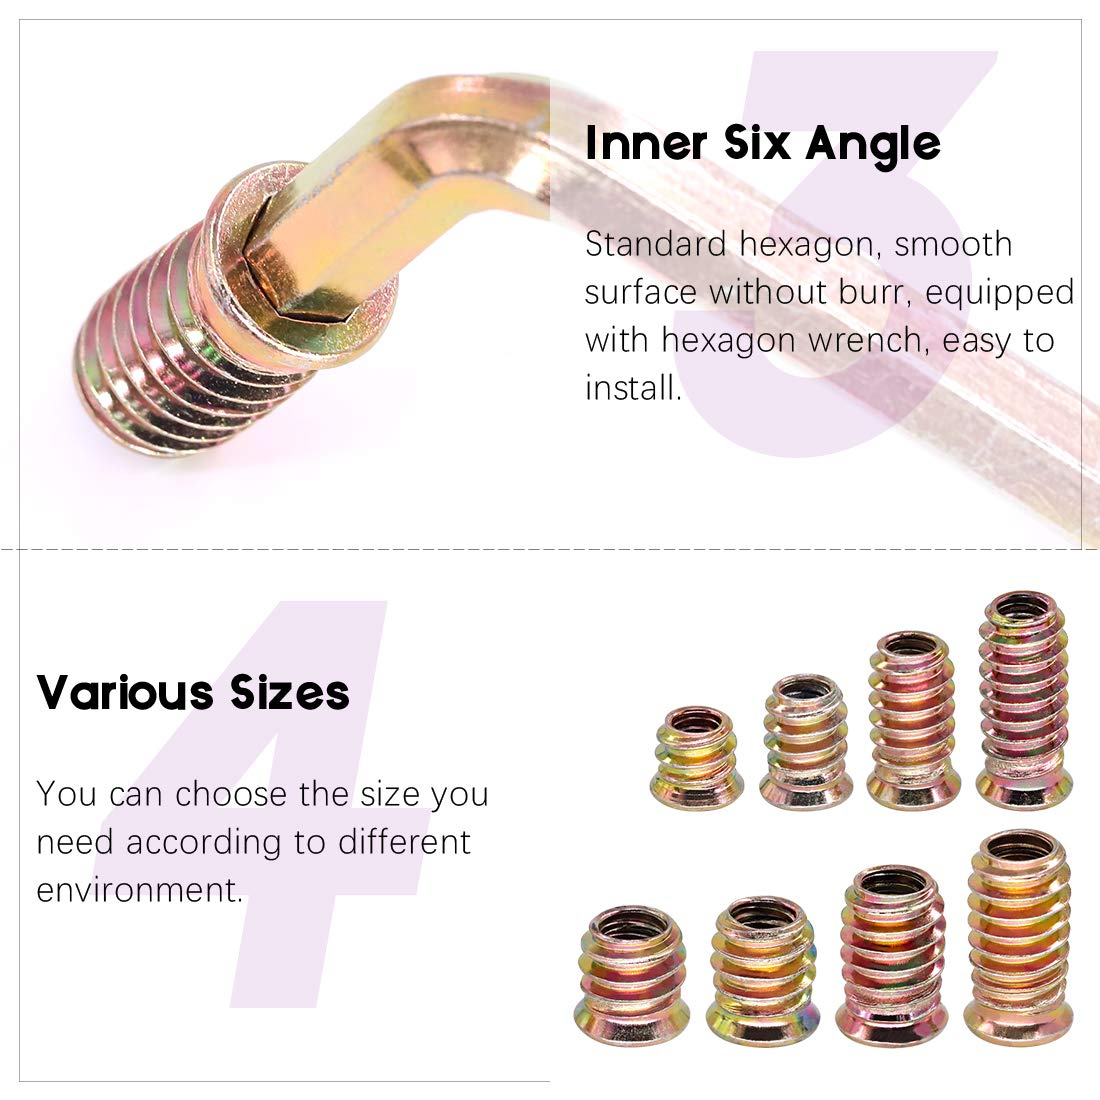 Swpeet 122Pcs Carbon Steel Color Zinc Plated Carbon Furniture Screw in Nut Threaded Wood Inserts Bolt Fastener Connector Hex Socket 1//4 + 5//16, Assortment Kit